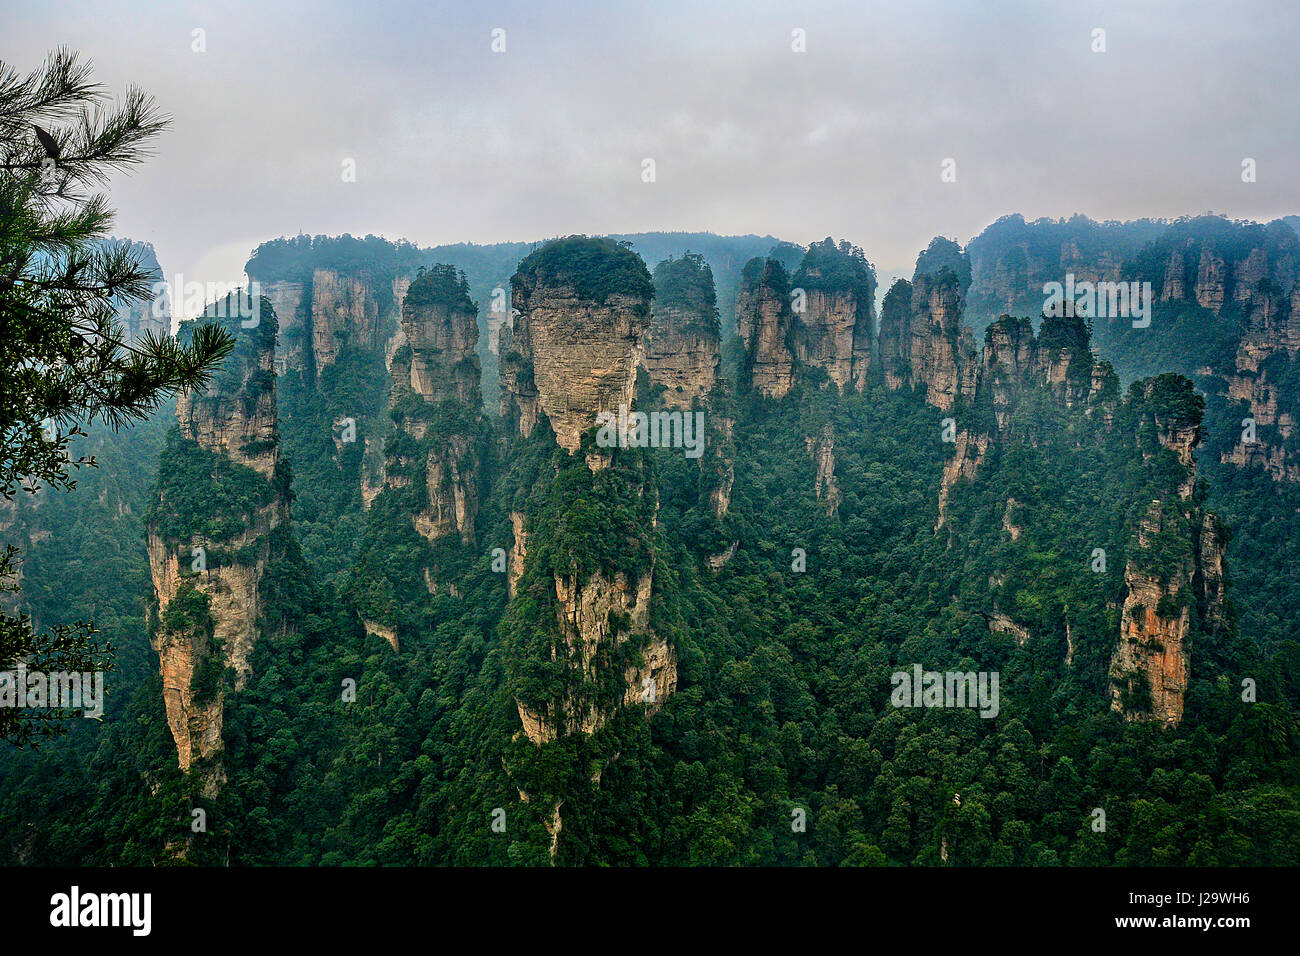 The nature of China and its features